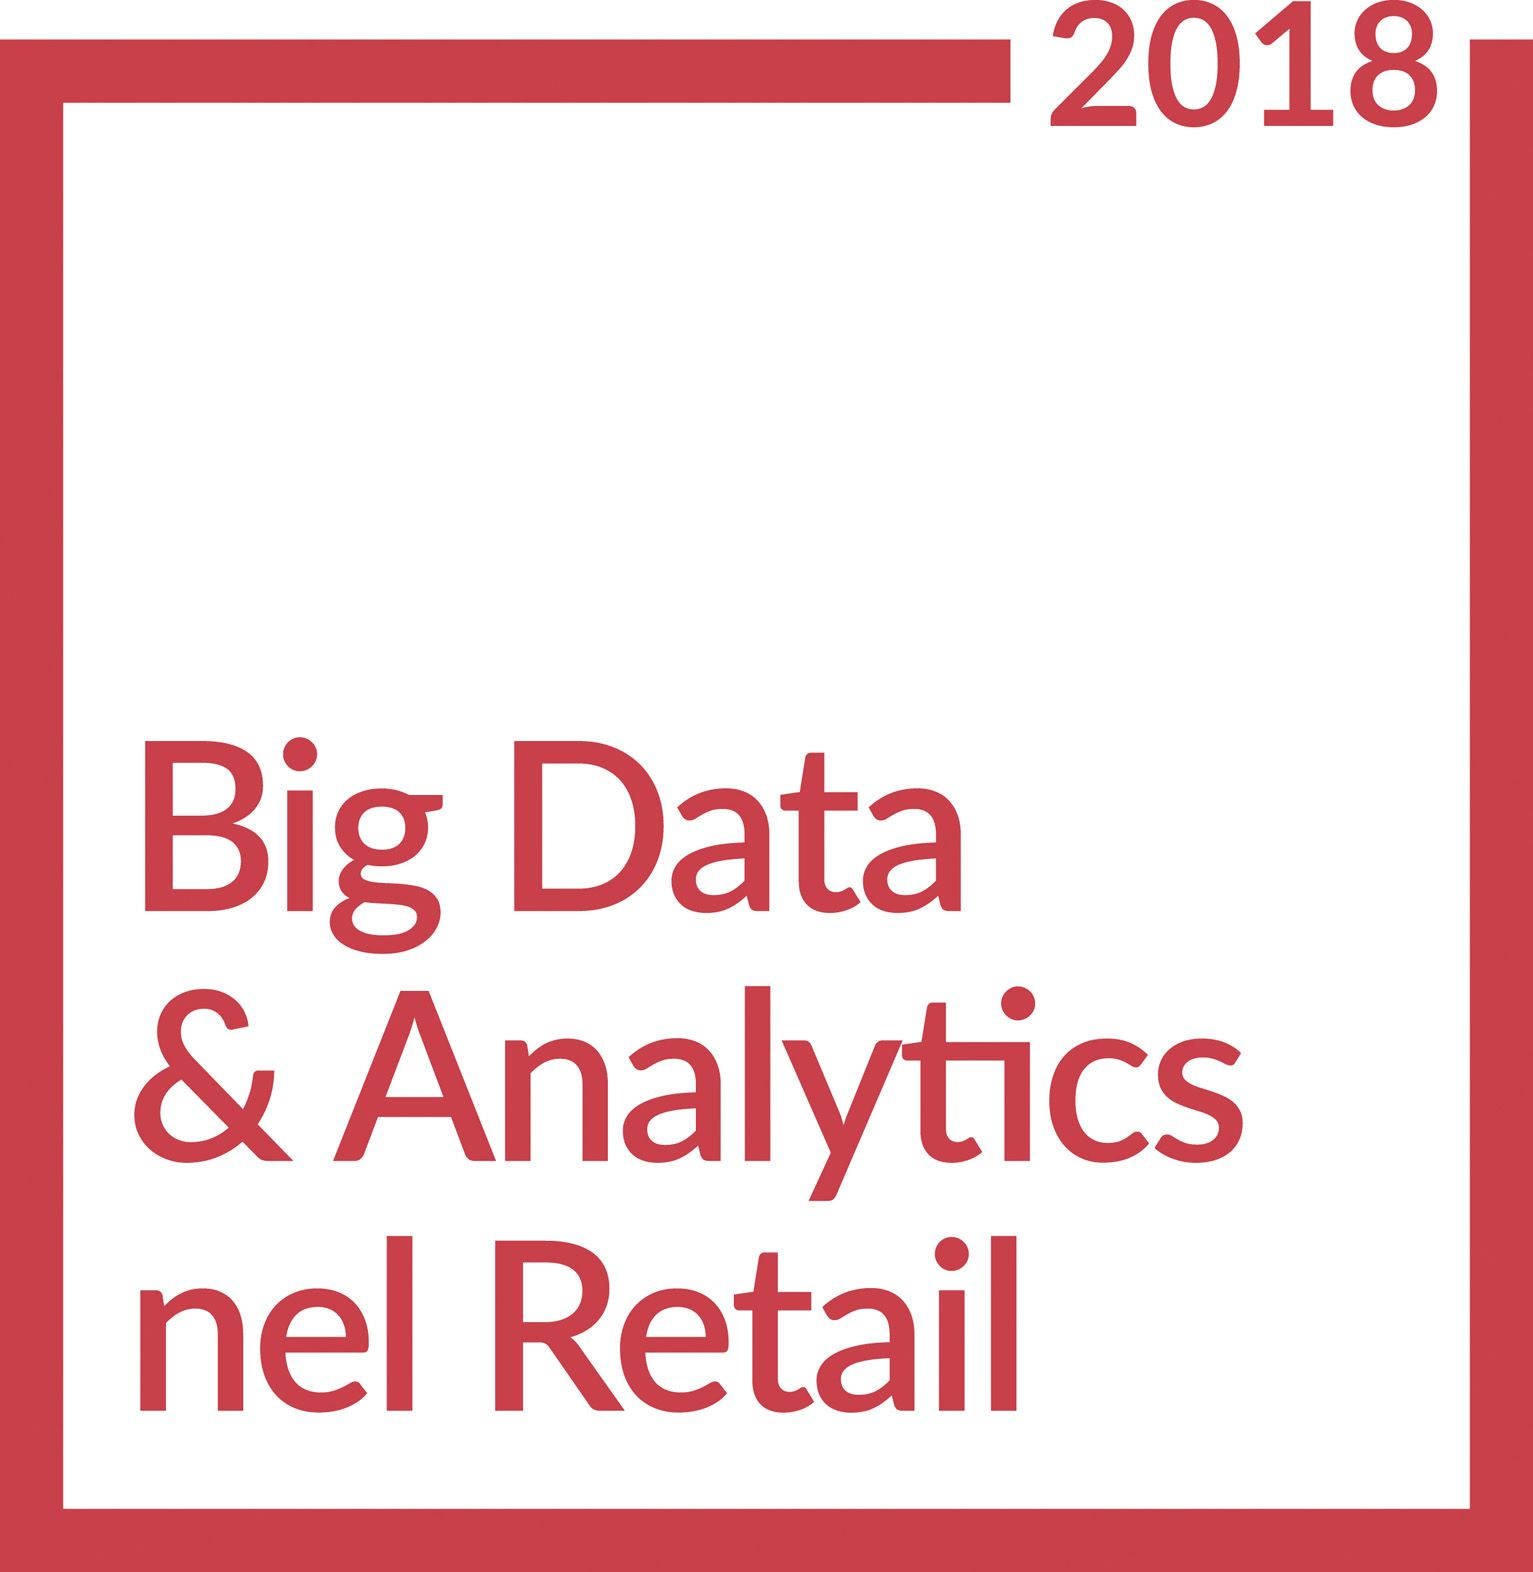 Big Data & Analytics nel Retail